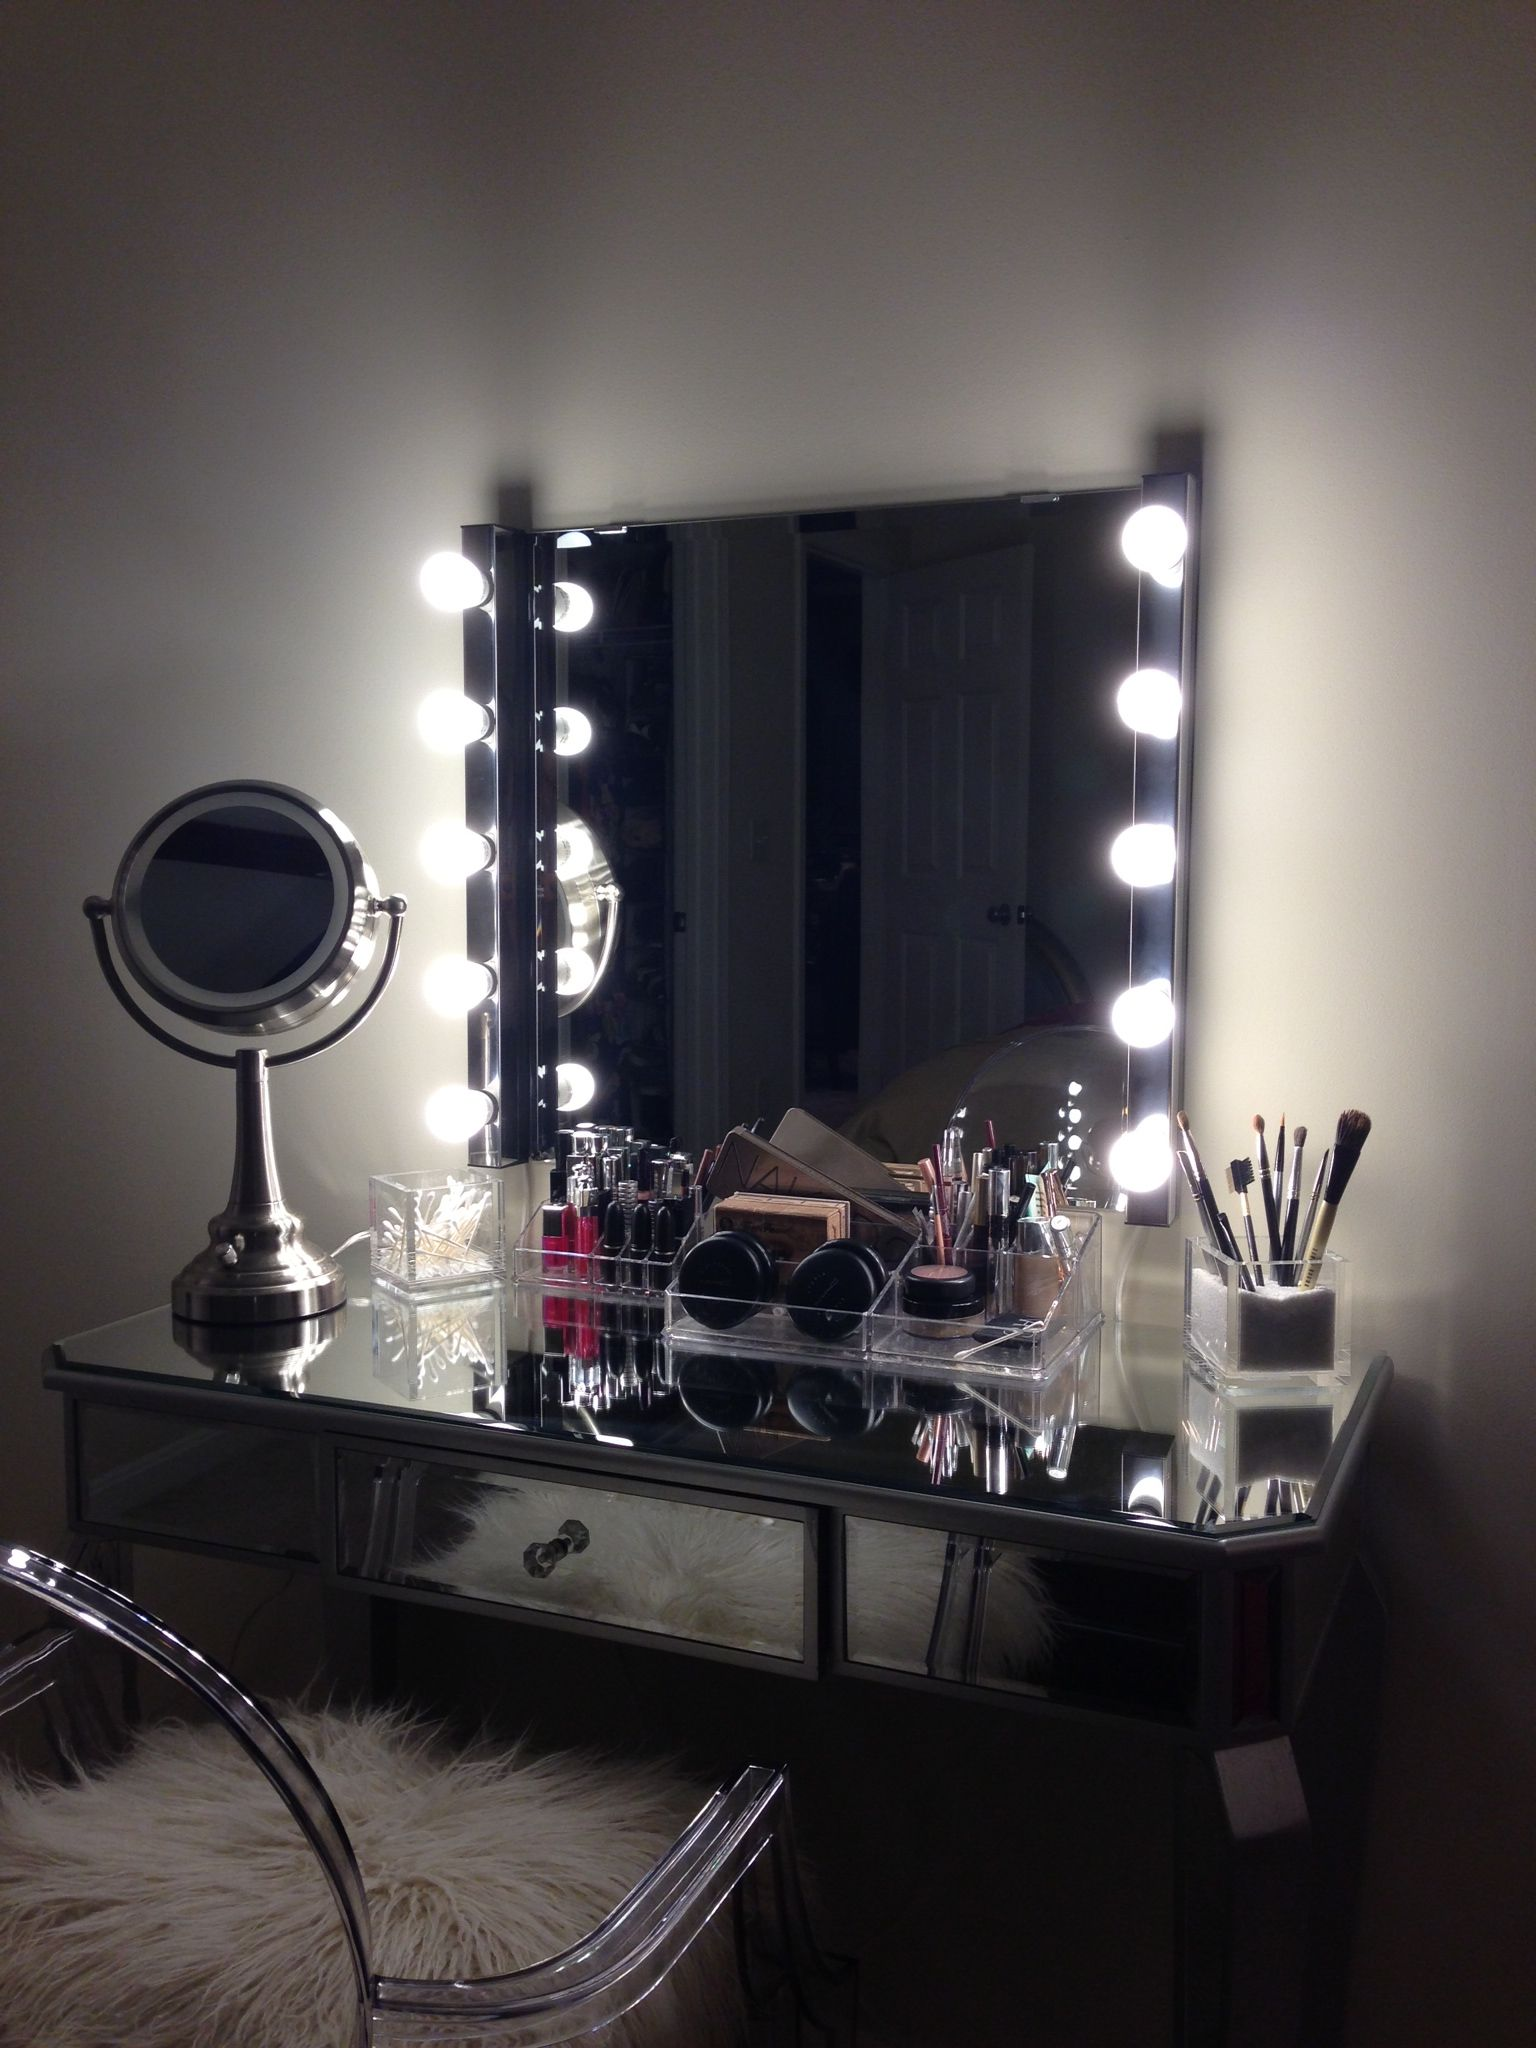 Diy Vanity Area Vanity Area With Lighted Mirror Home Is Where The Heart Is